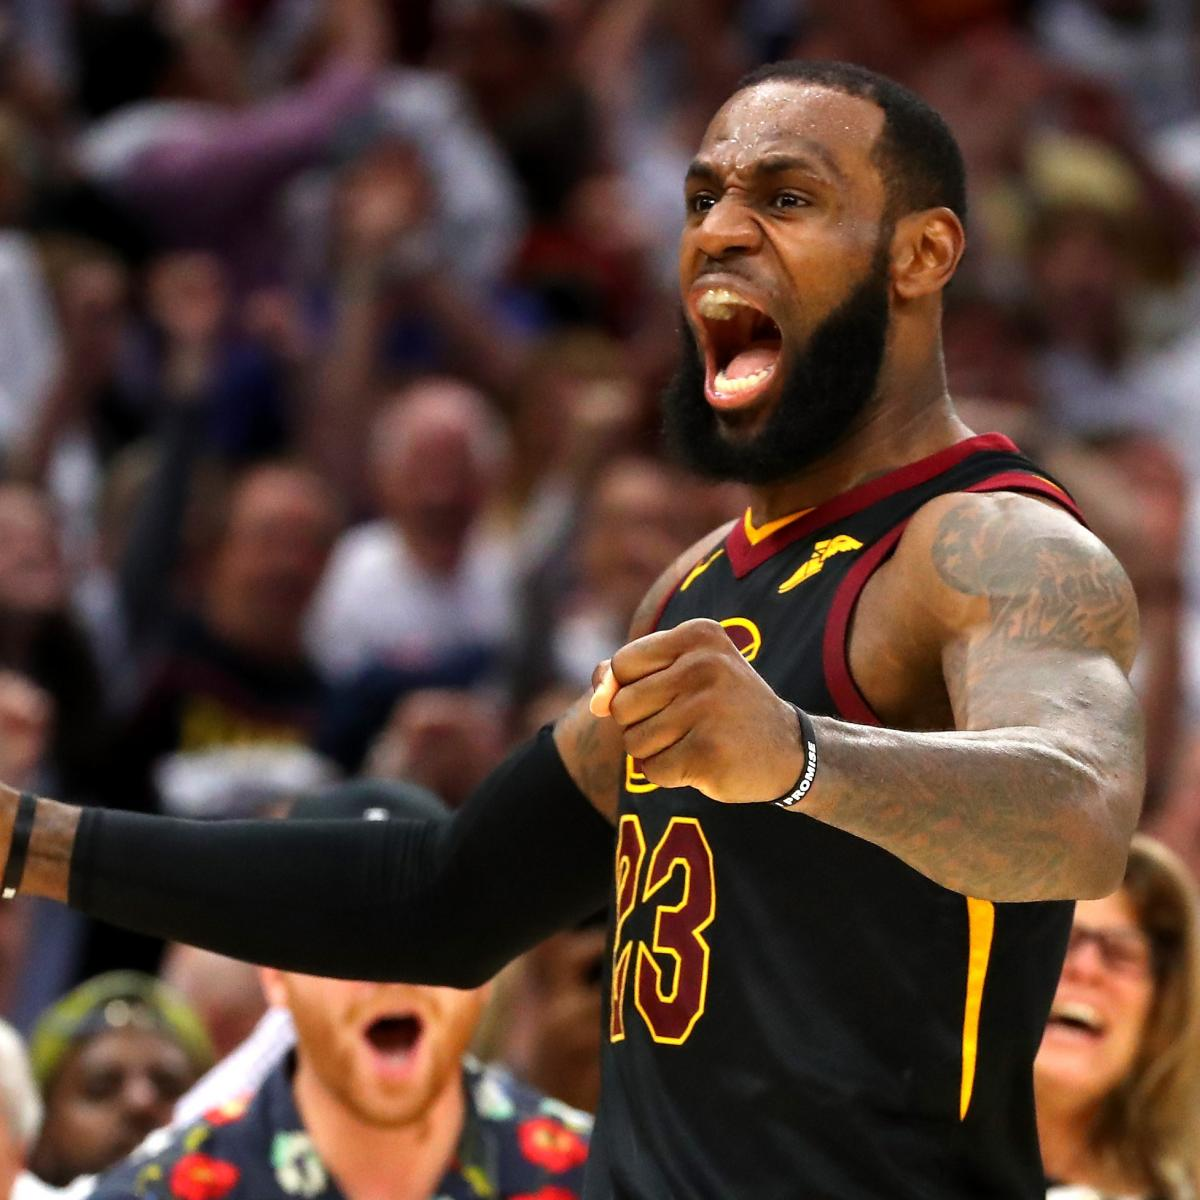 LeBron James' Game 7 Over/Under Of 38 Points Believed To